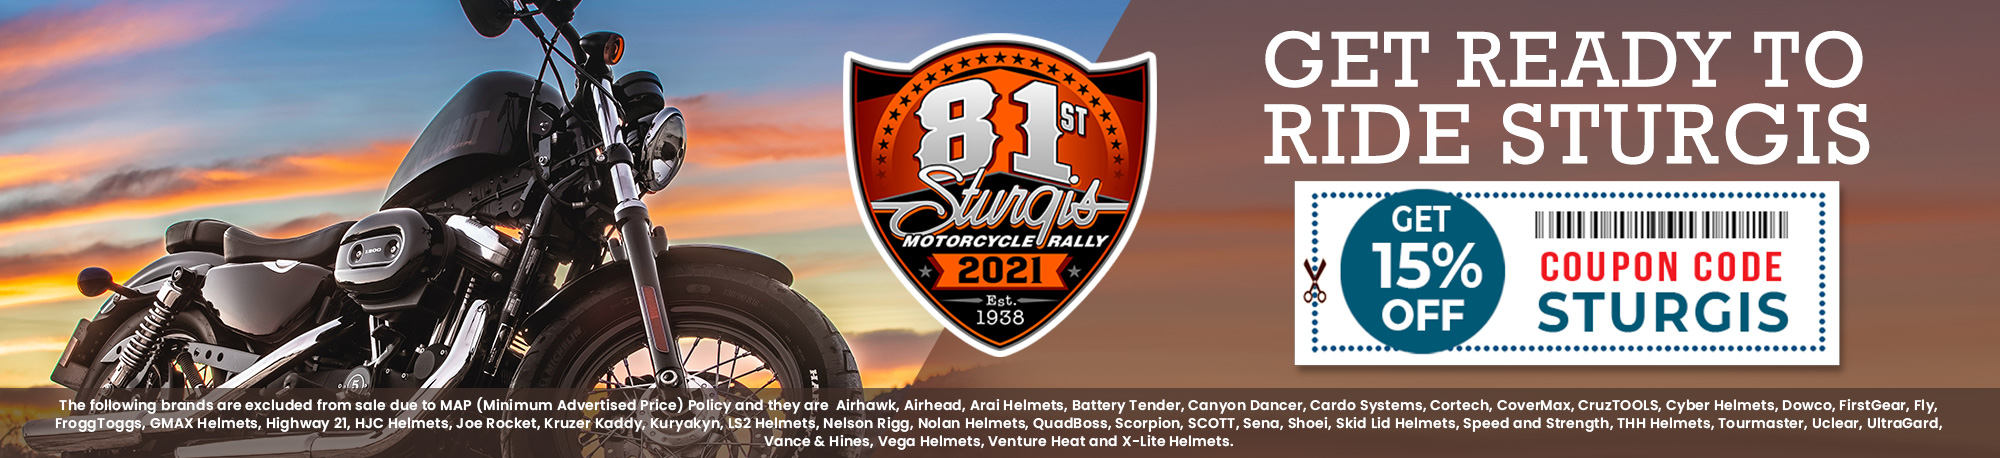 Get Ready To Ride Sturgis - 15% Off - Coupon Code: STURGIS